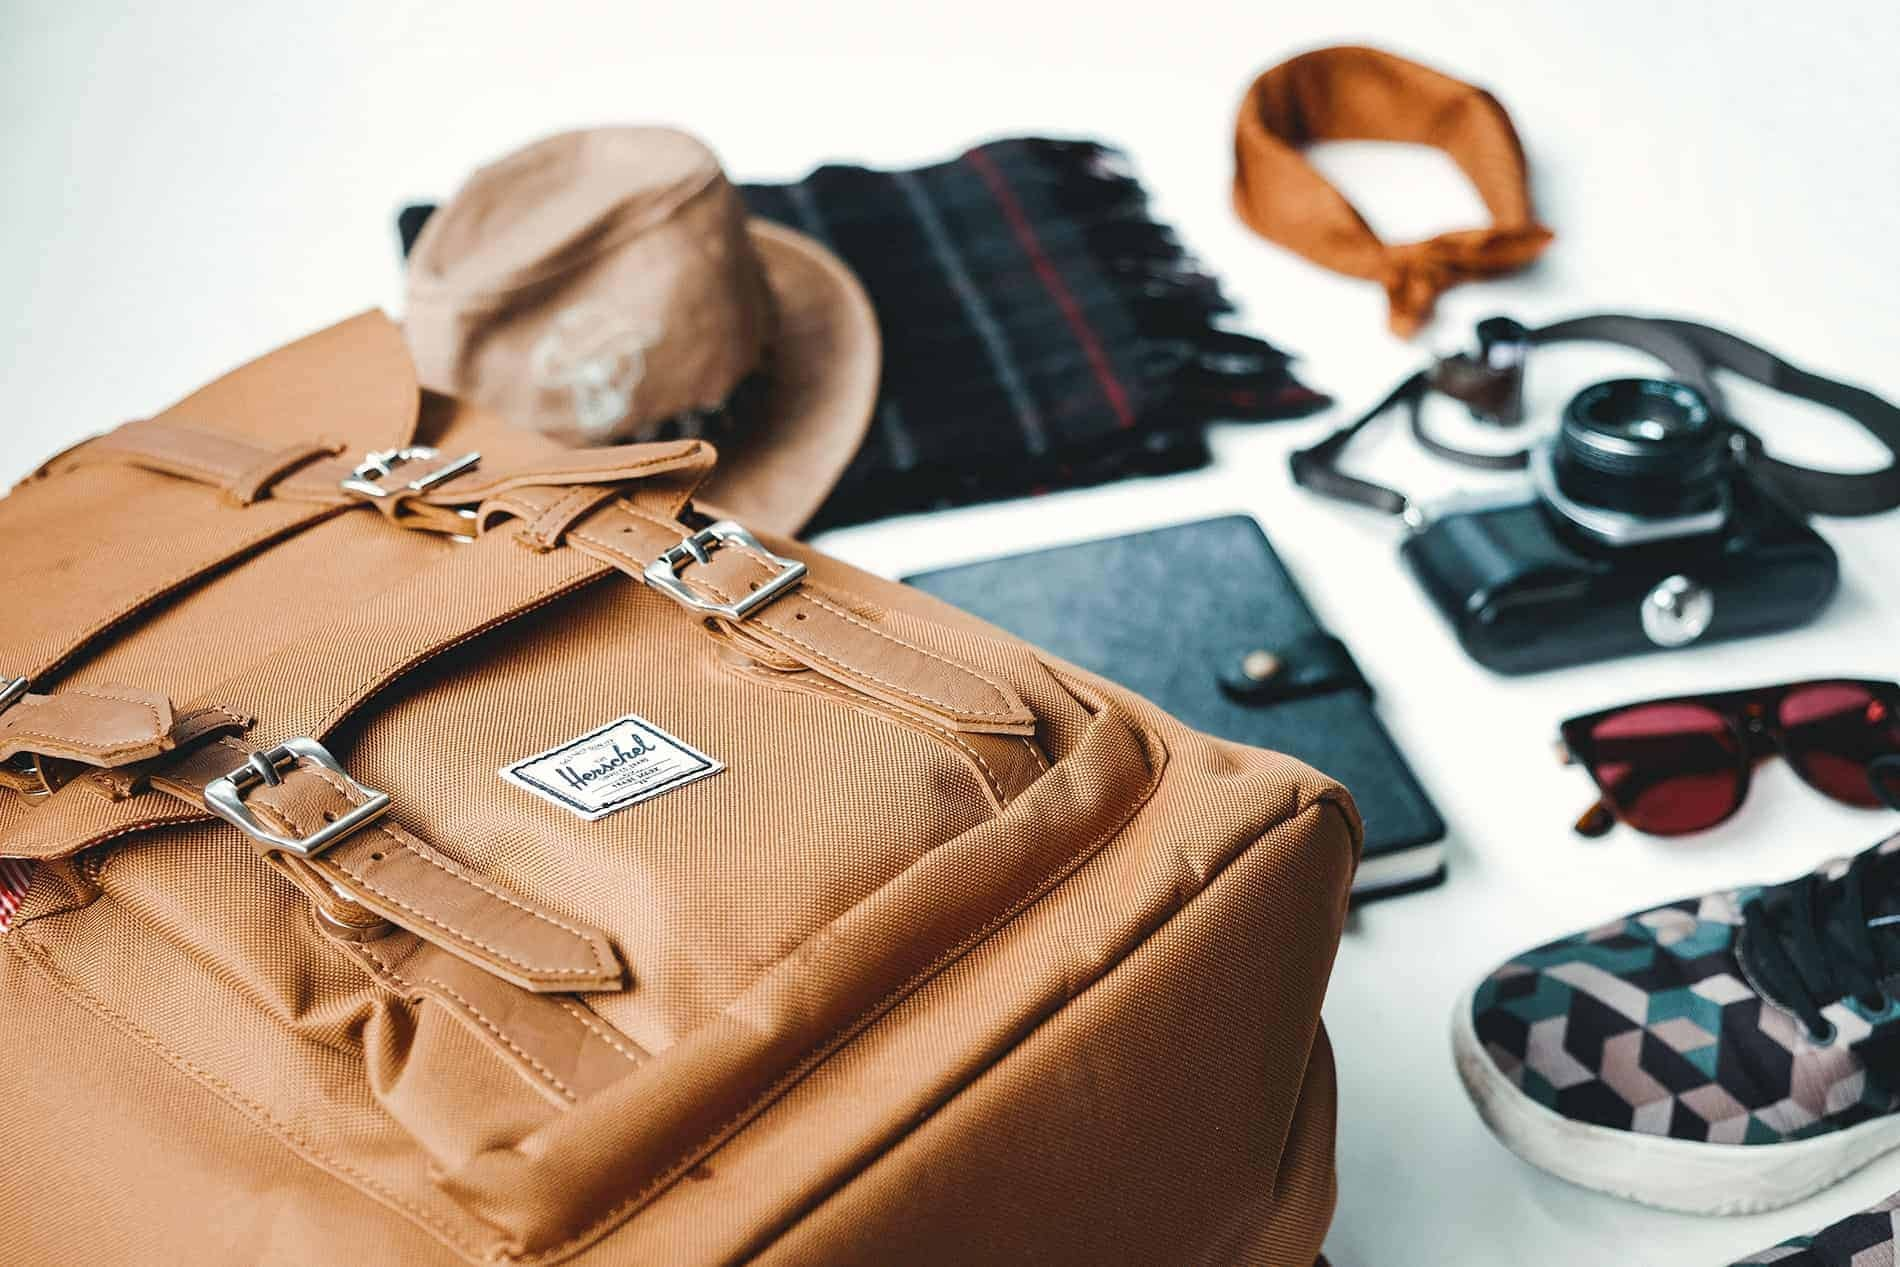 Accessories that help make being a tour guide easy